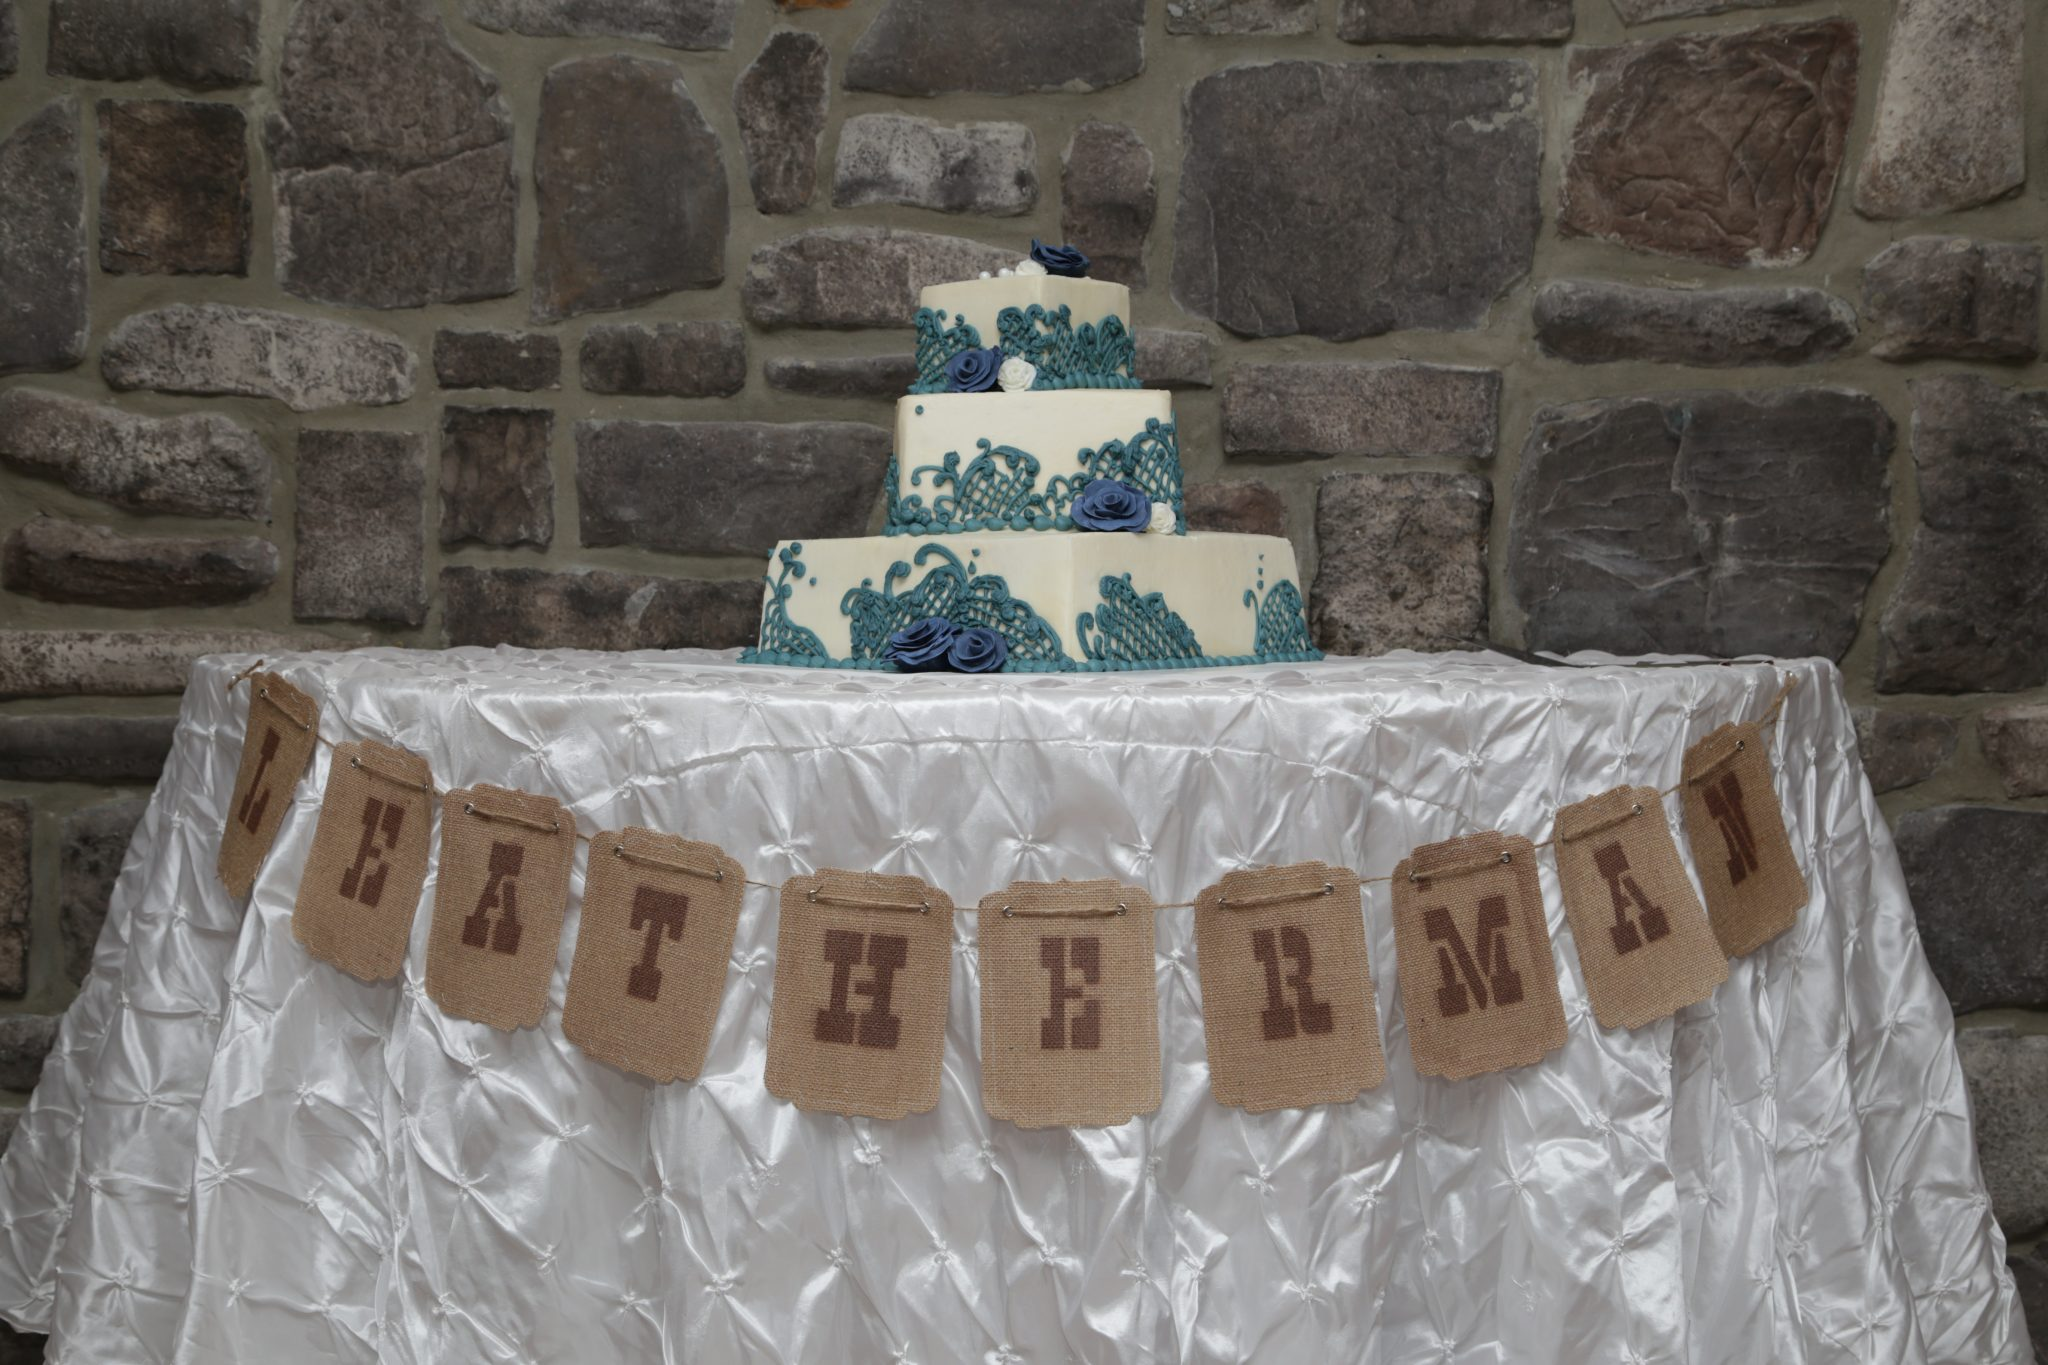 Wedding cake table is decorated with married couple's name for their country wedding in Maryland.